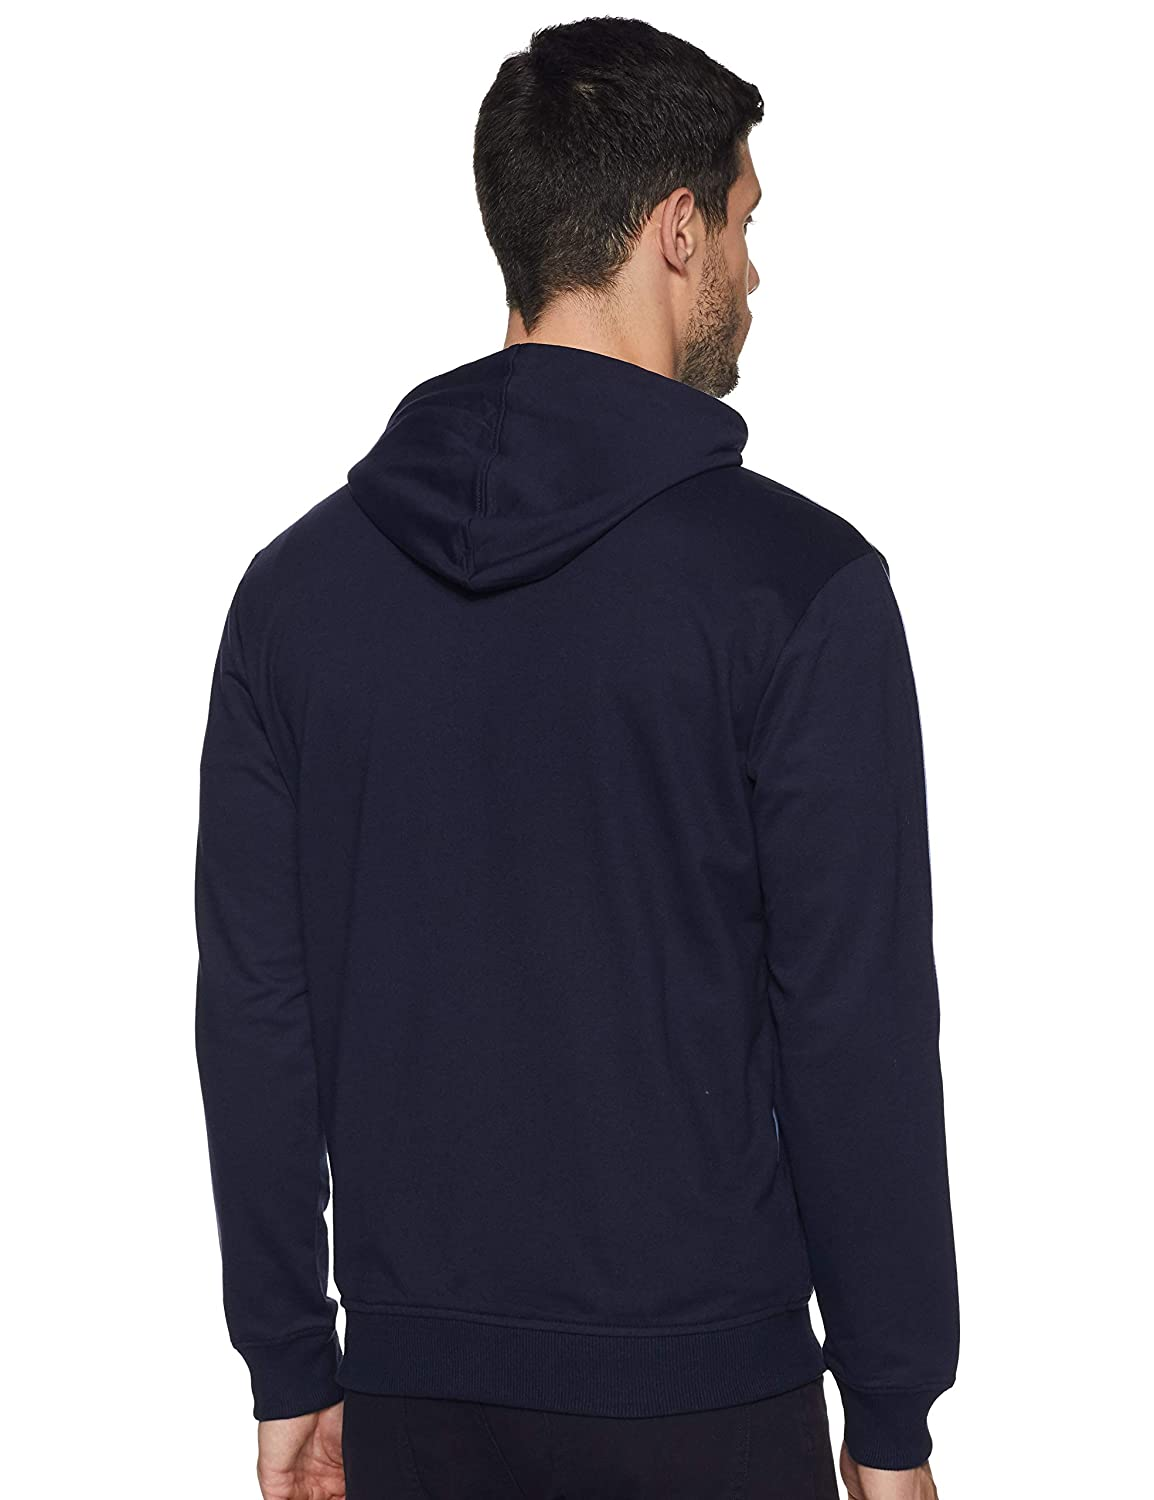 Buy Fila Clothes For Men's to Save 63% on Sweatshirts and Hoodies Online